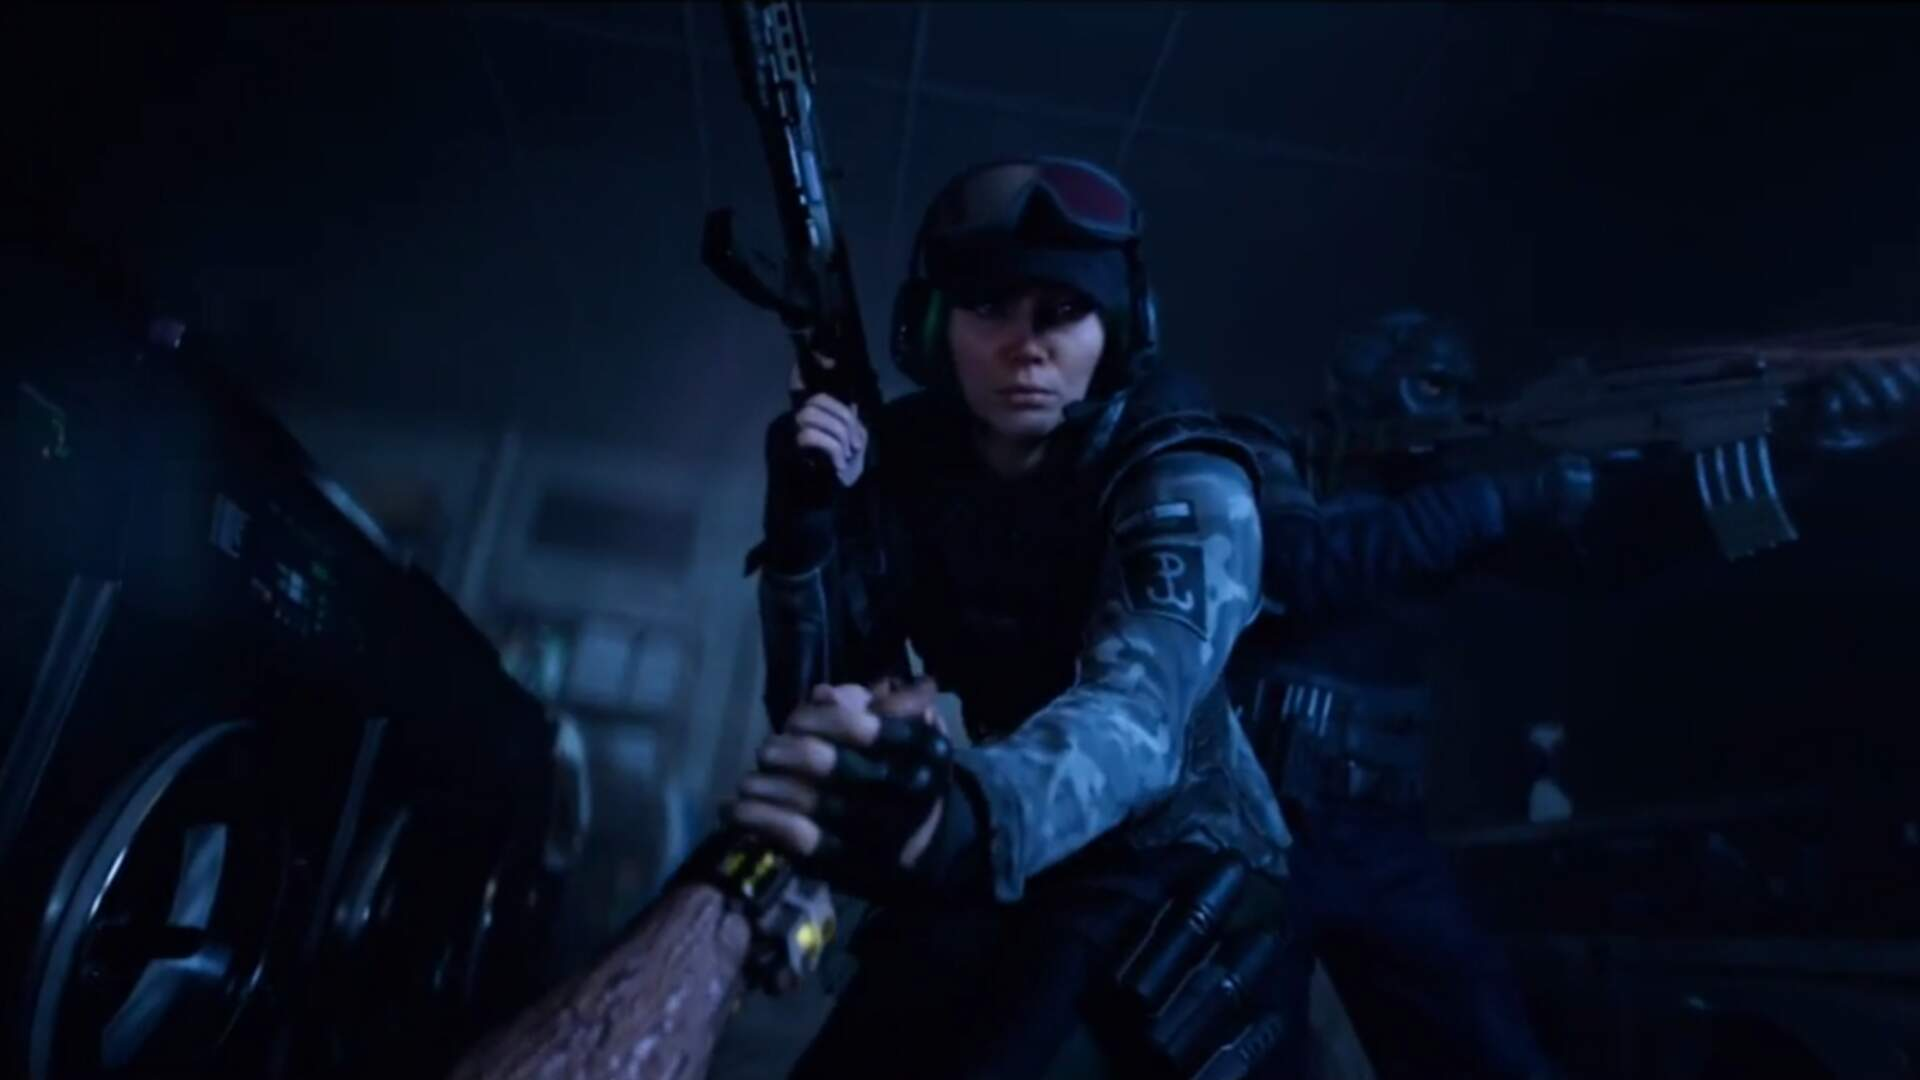 The Next Rainbow Six is a Co-Op Game Called Quarantine, Coming Early Next Year